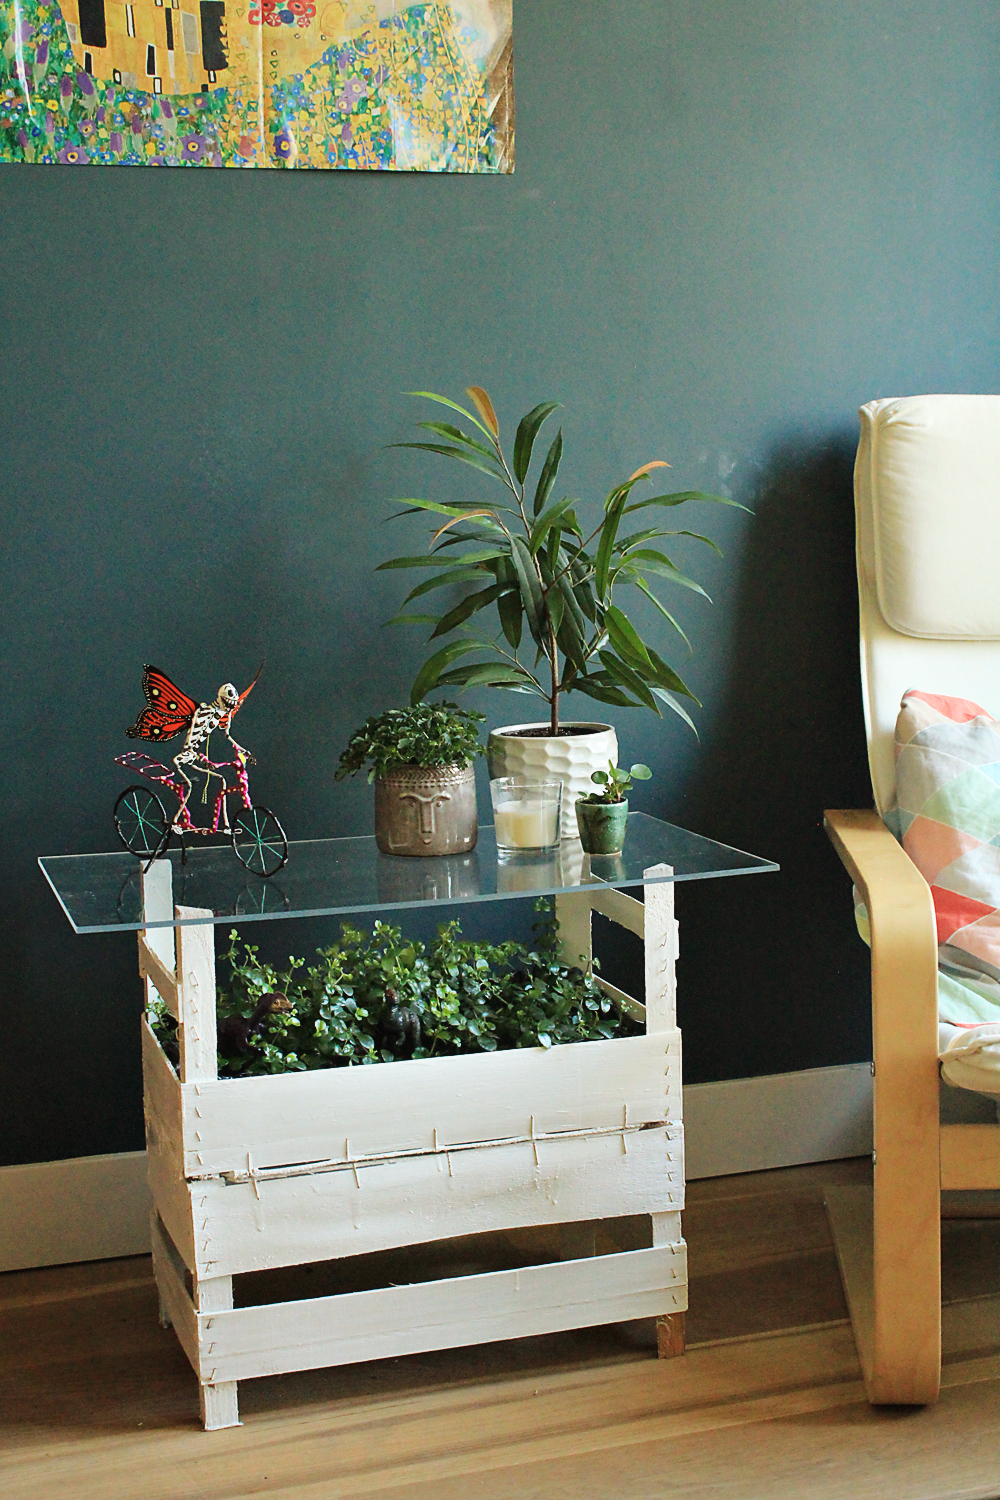 Wooden crates & plexiglass coffee table infused with plants DIY | by IN WHIRL OF INSPIRATION